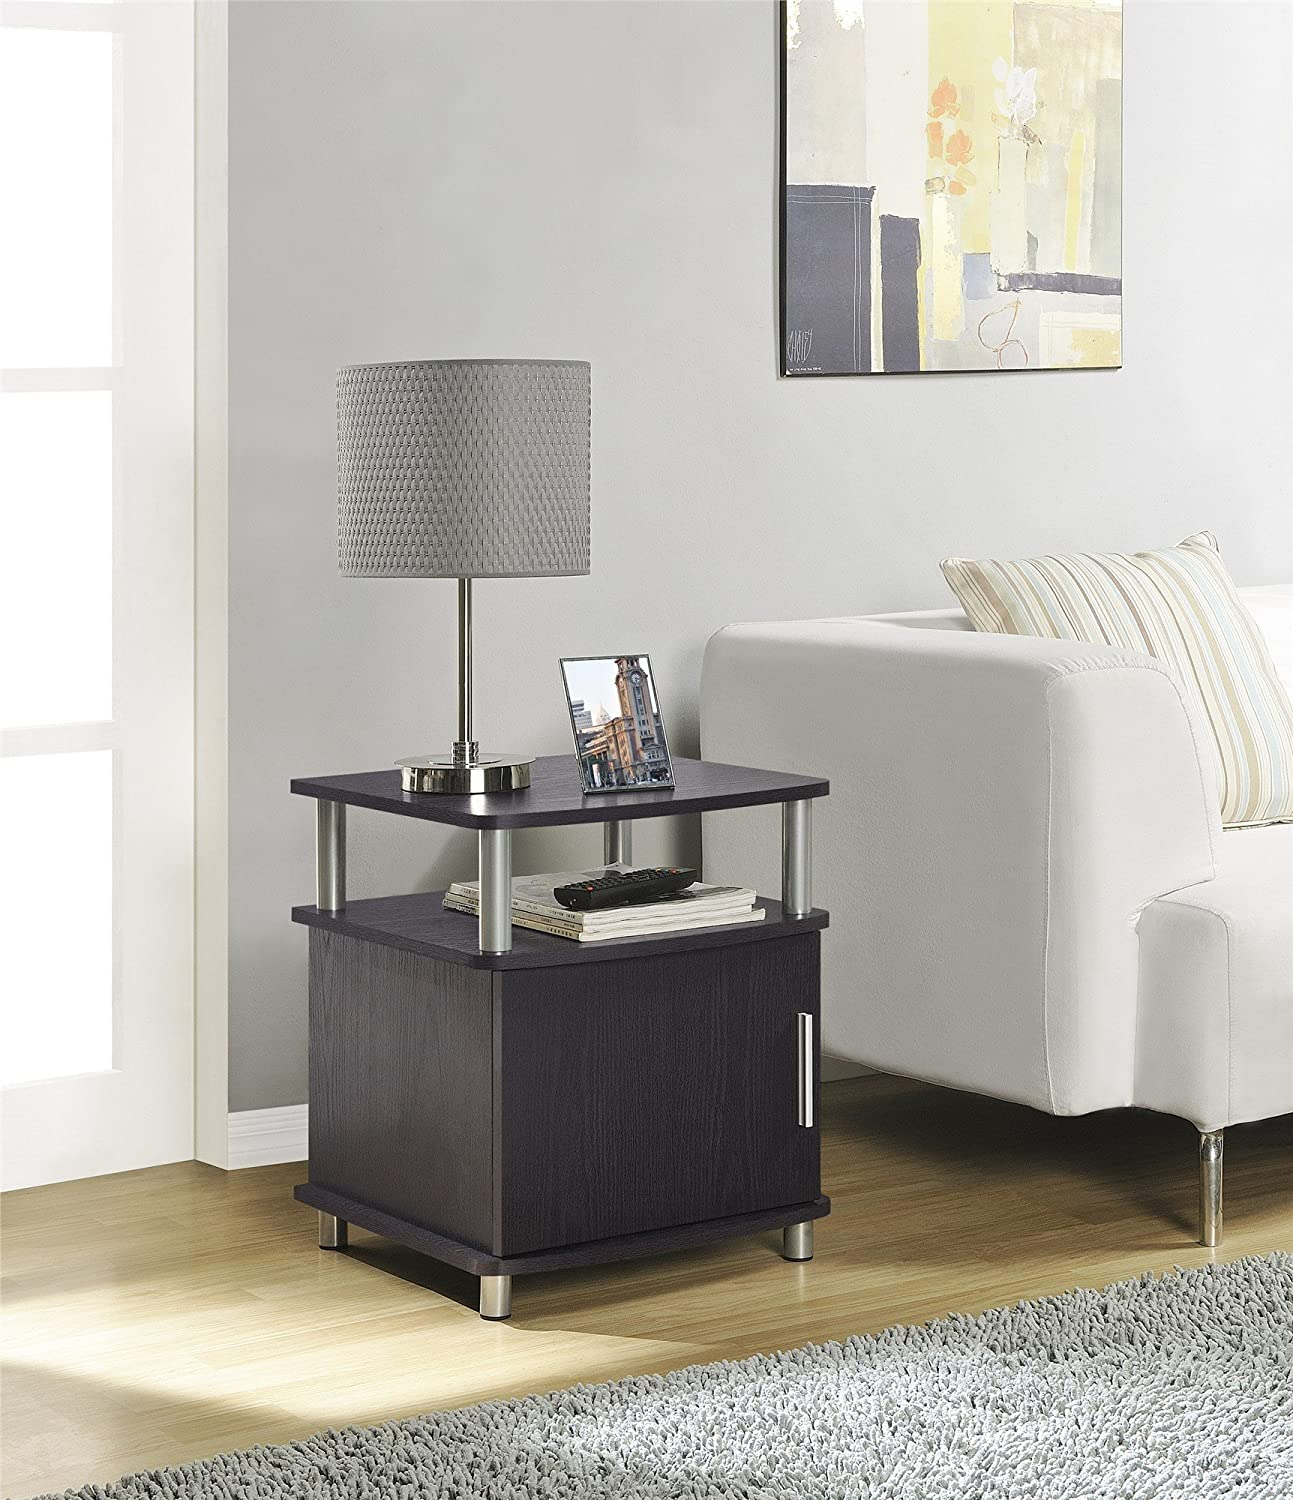 Charming Amazon.com: Altra Carson End Table With Storage, Espresso/Silver: Kitchen U0026  Dining